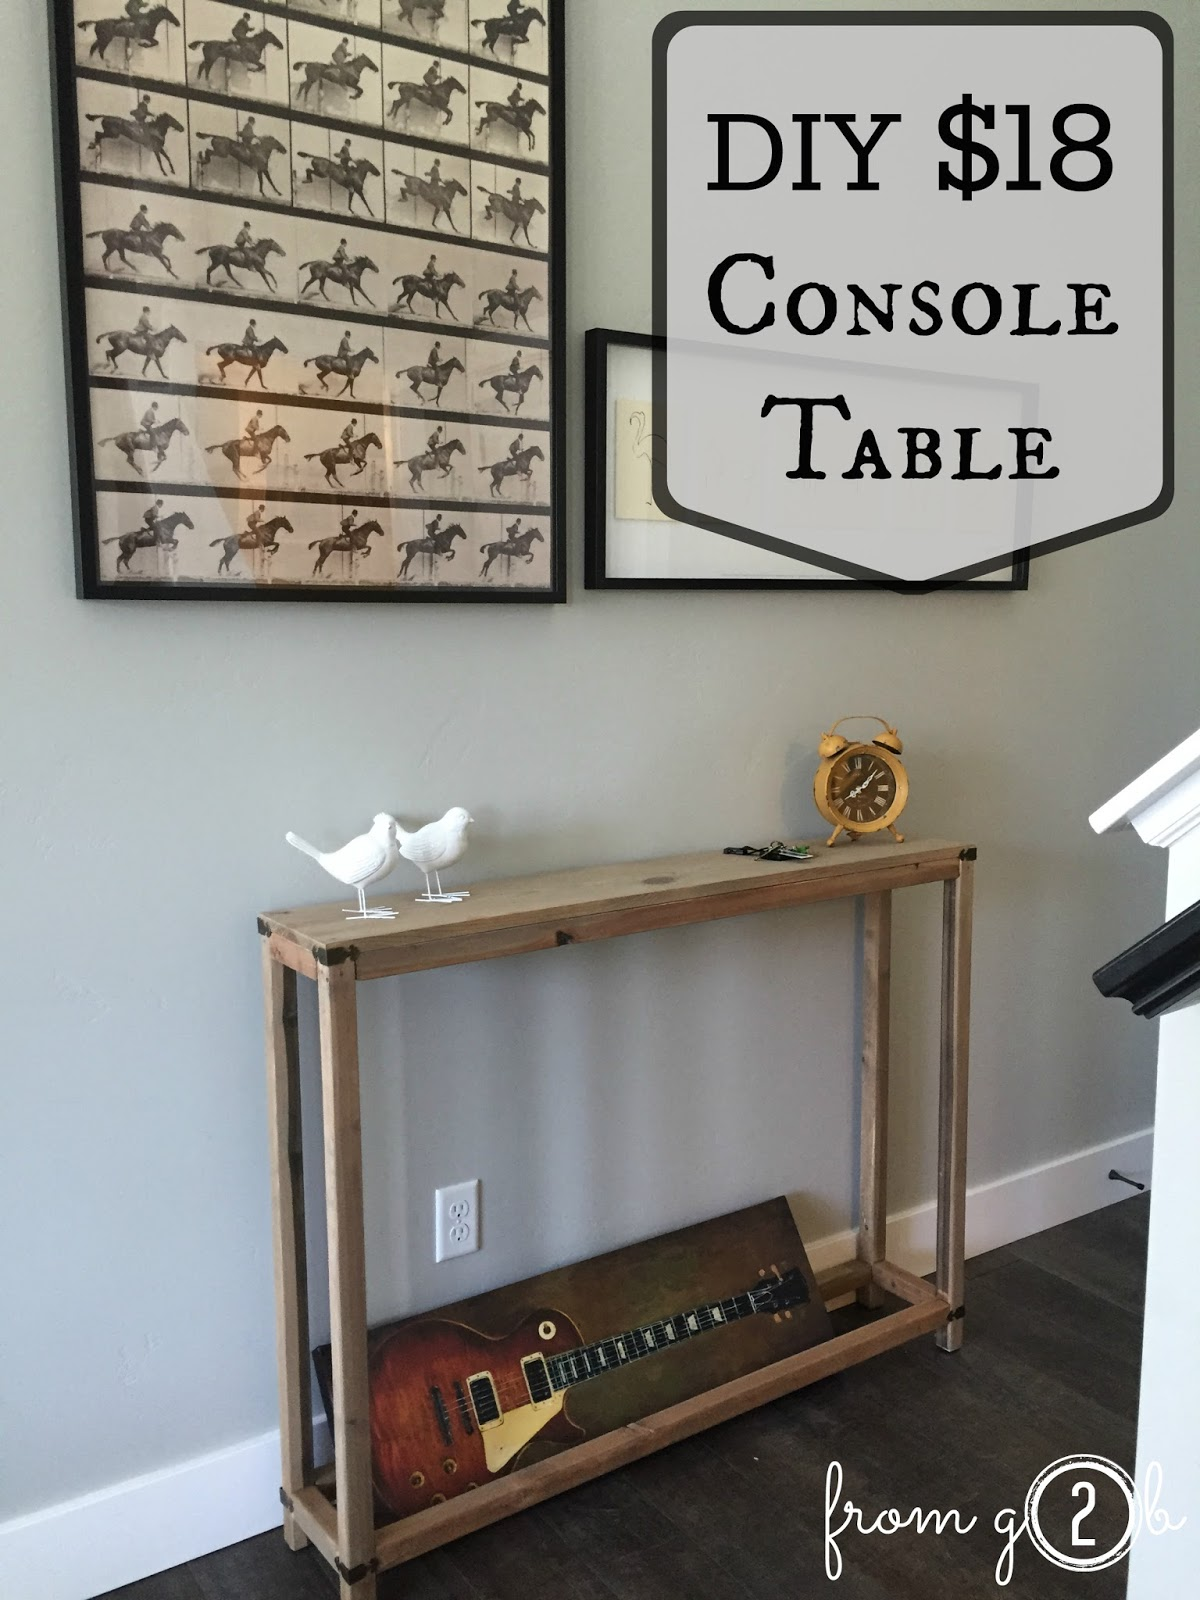 from Gardners 2 Bergers: $18 DIY Console Table